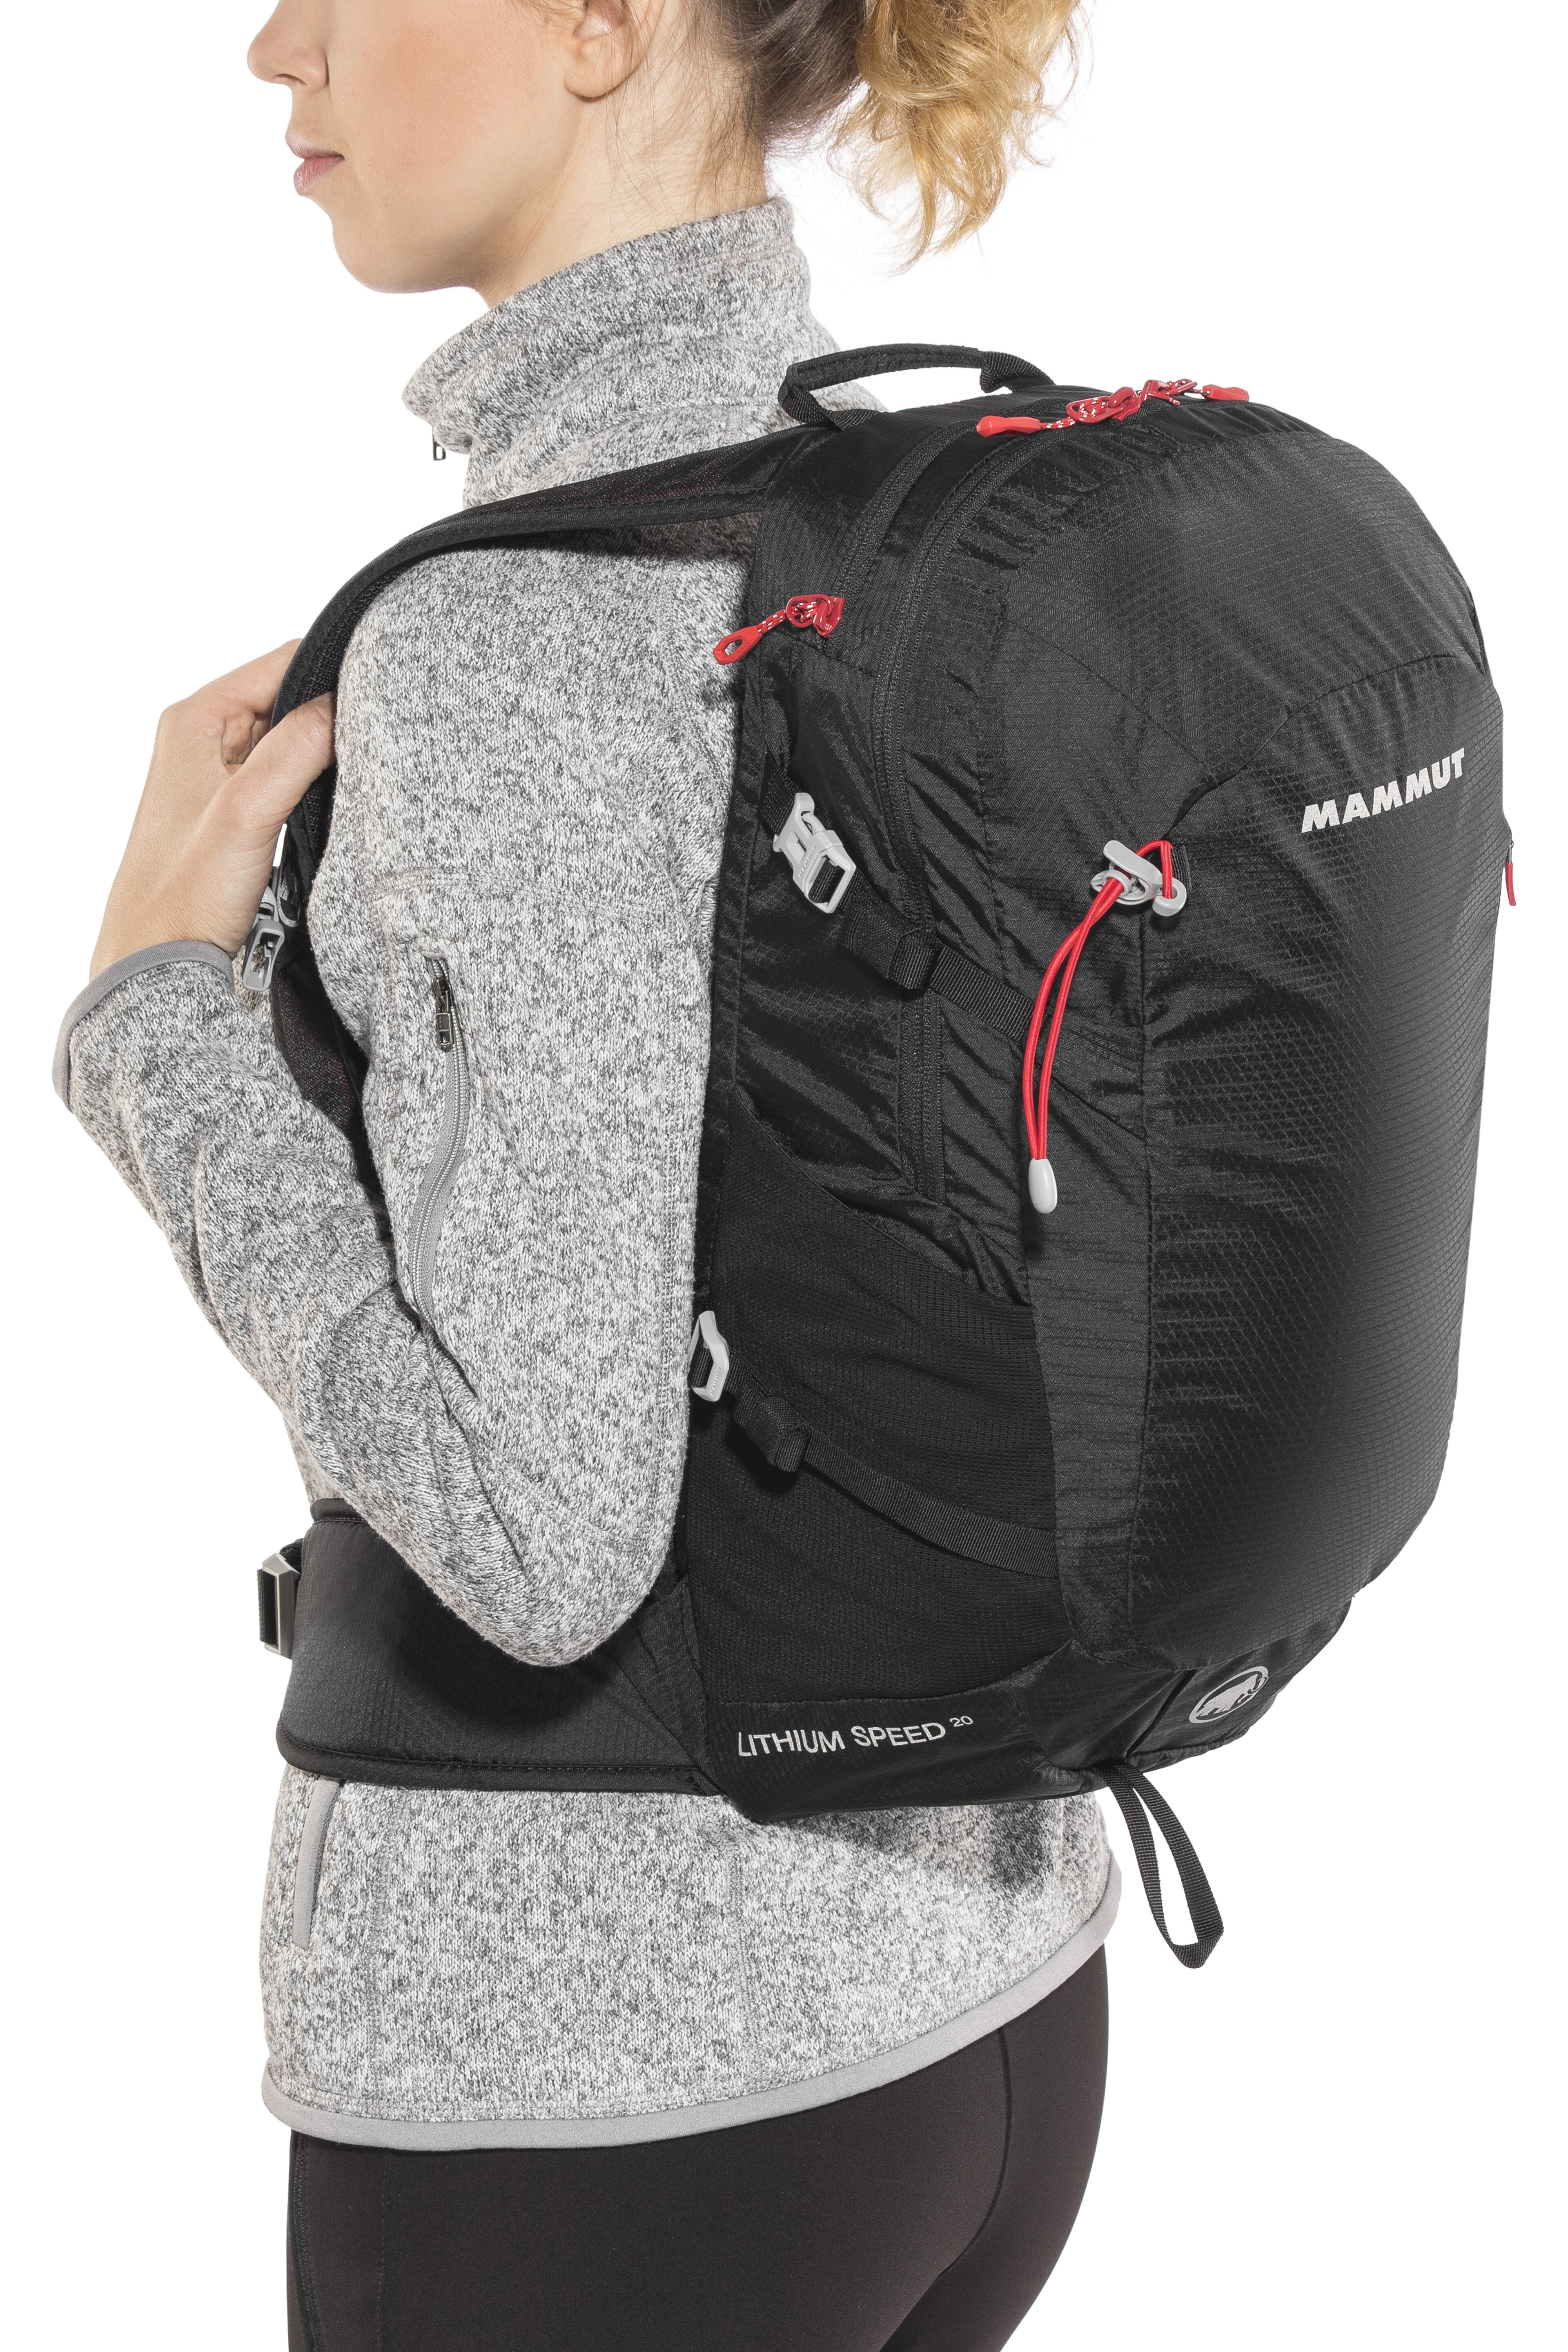 18f7aba45f558 Mammut Lithium Speed Backpack 20l black at Addnature.co.uk